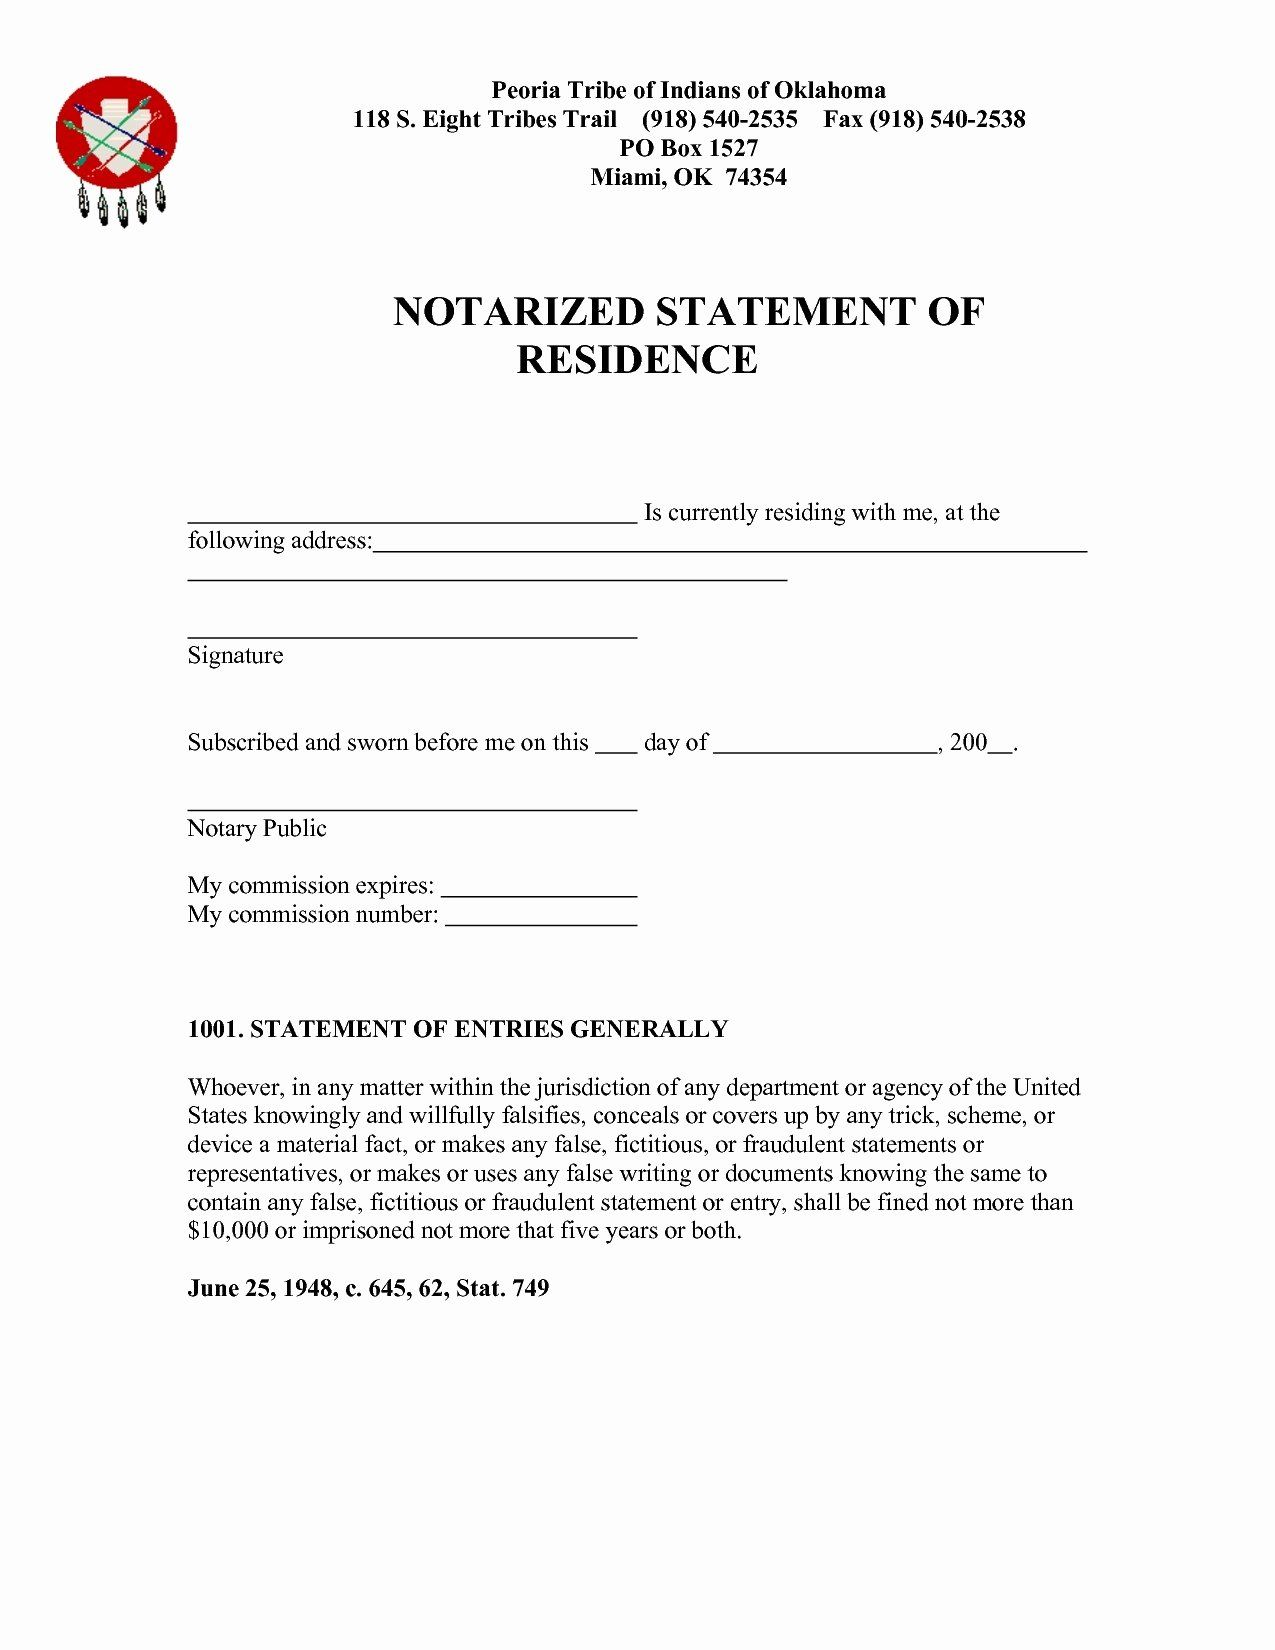 Proof Of Residency Letter Notarized Inspirational Notarized Letter Sample Residence Flowersheet Lettering Business Template Letter Templates Proof of residency letter template